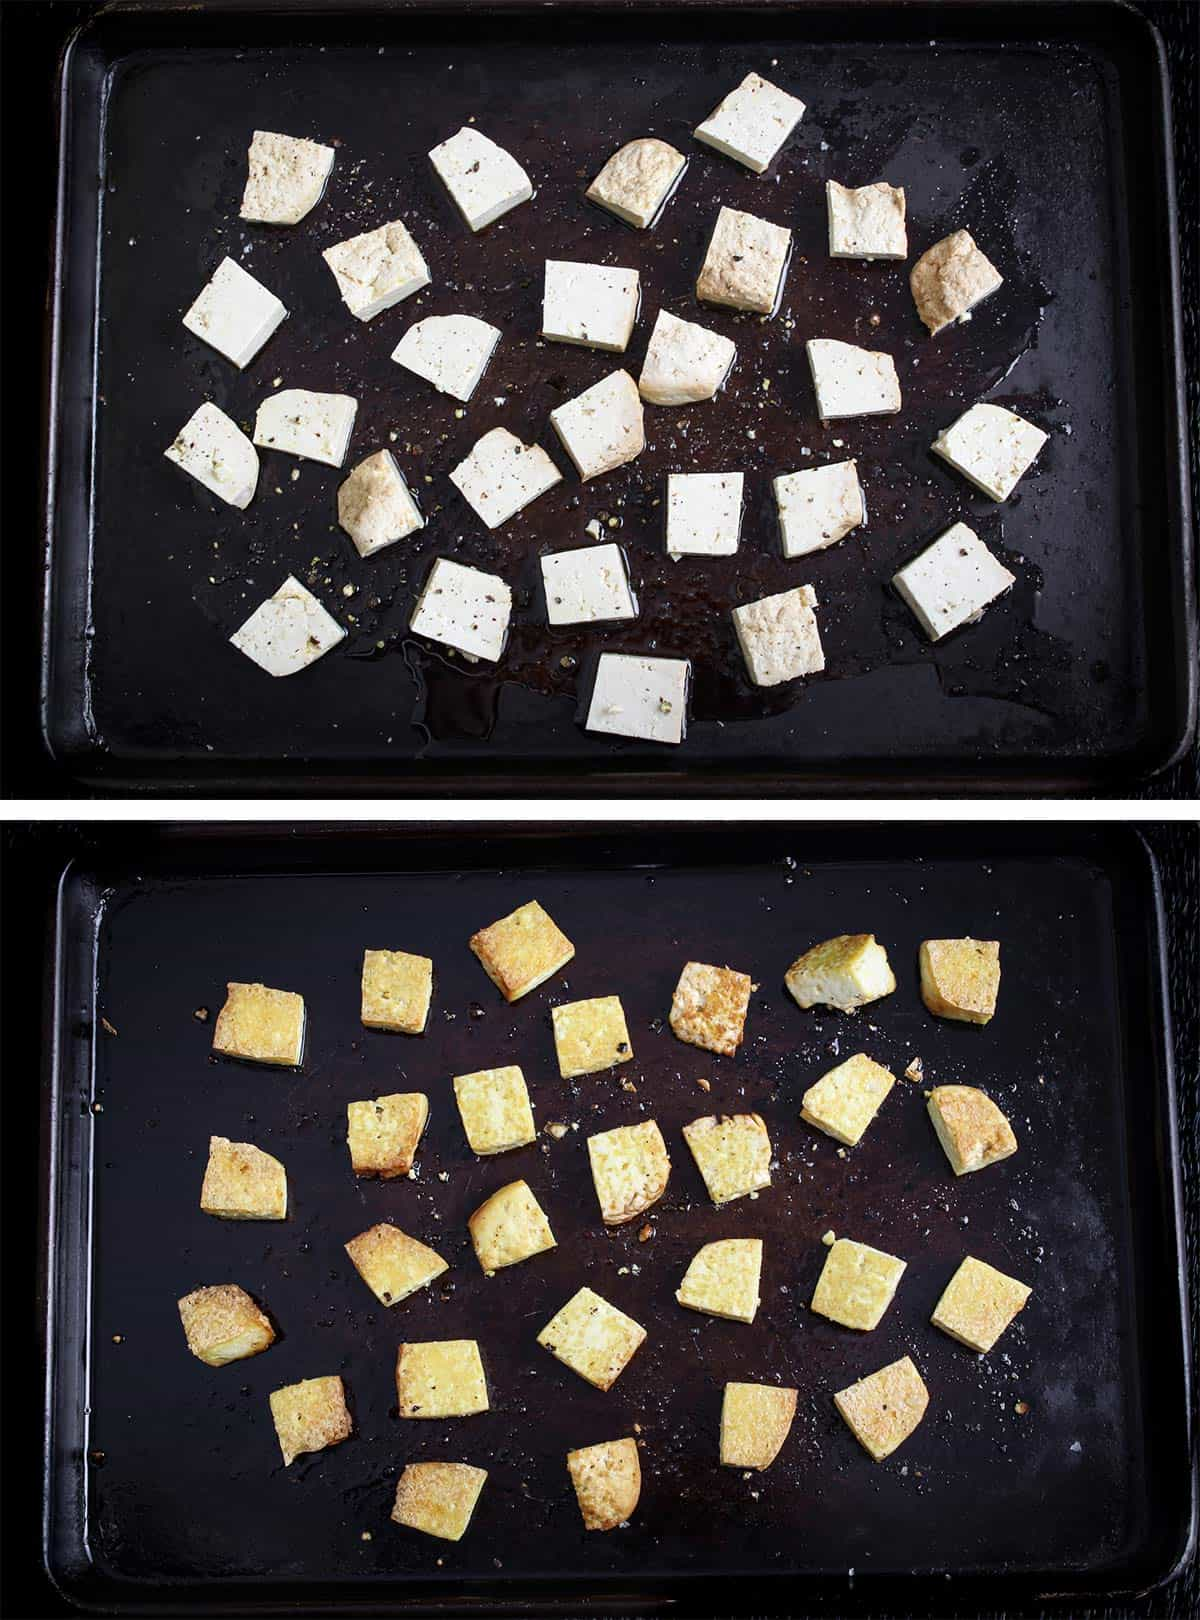 Baked Smoked Tofu Before and After